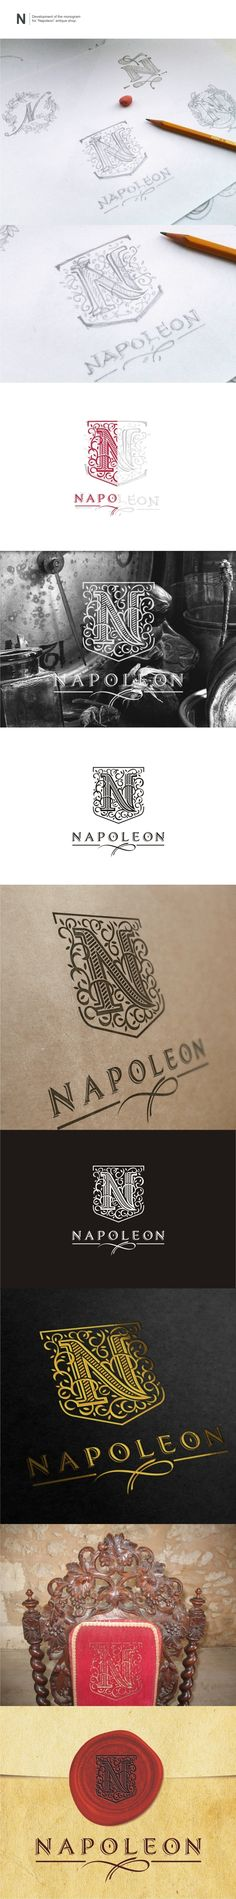 """Napoleon"" antique shop. by Alexey Markin, via Behance"